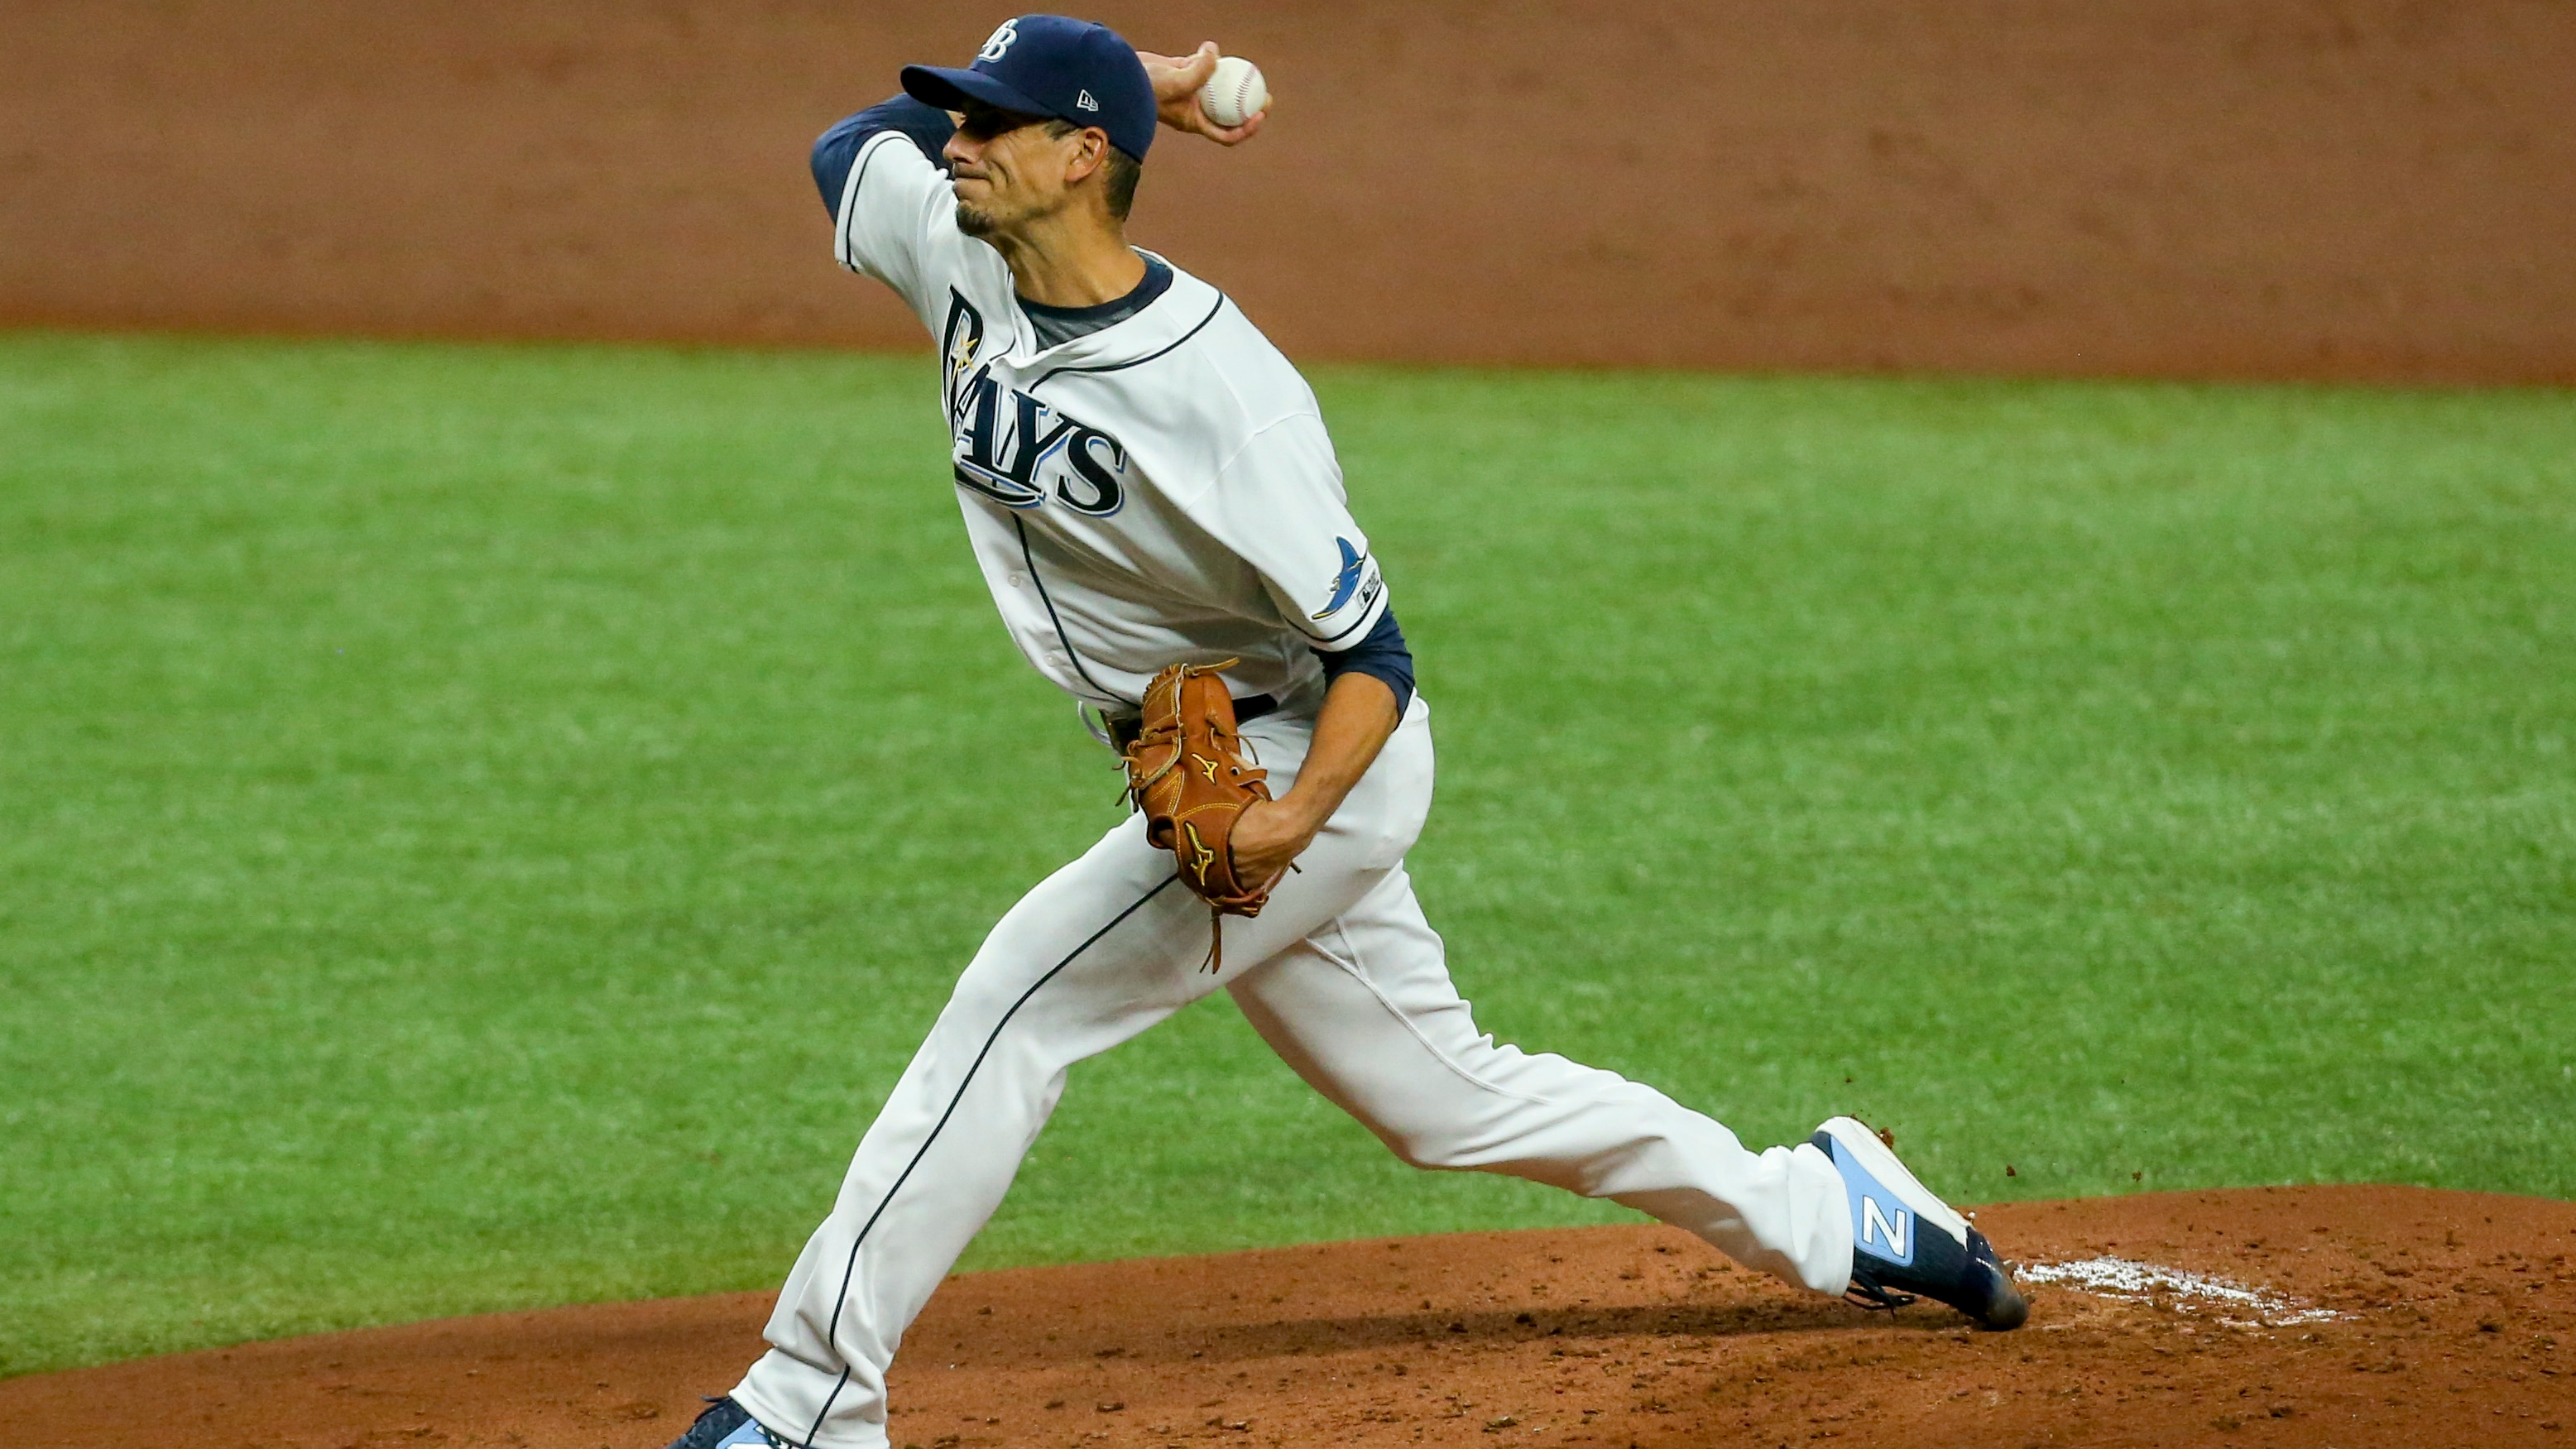 rays charlie morton looks to build up endurance in next outing rays charlie morton looks to build up